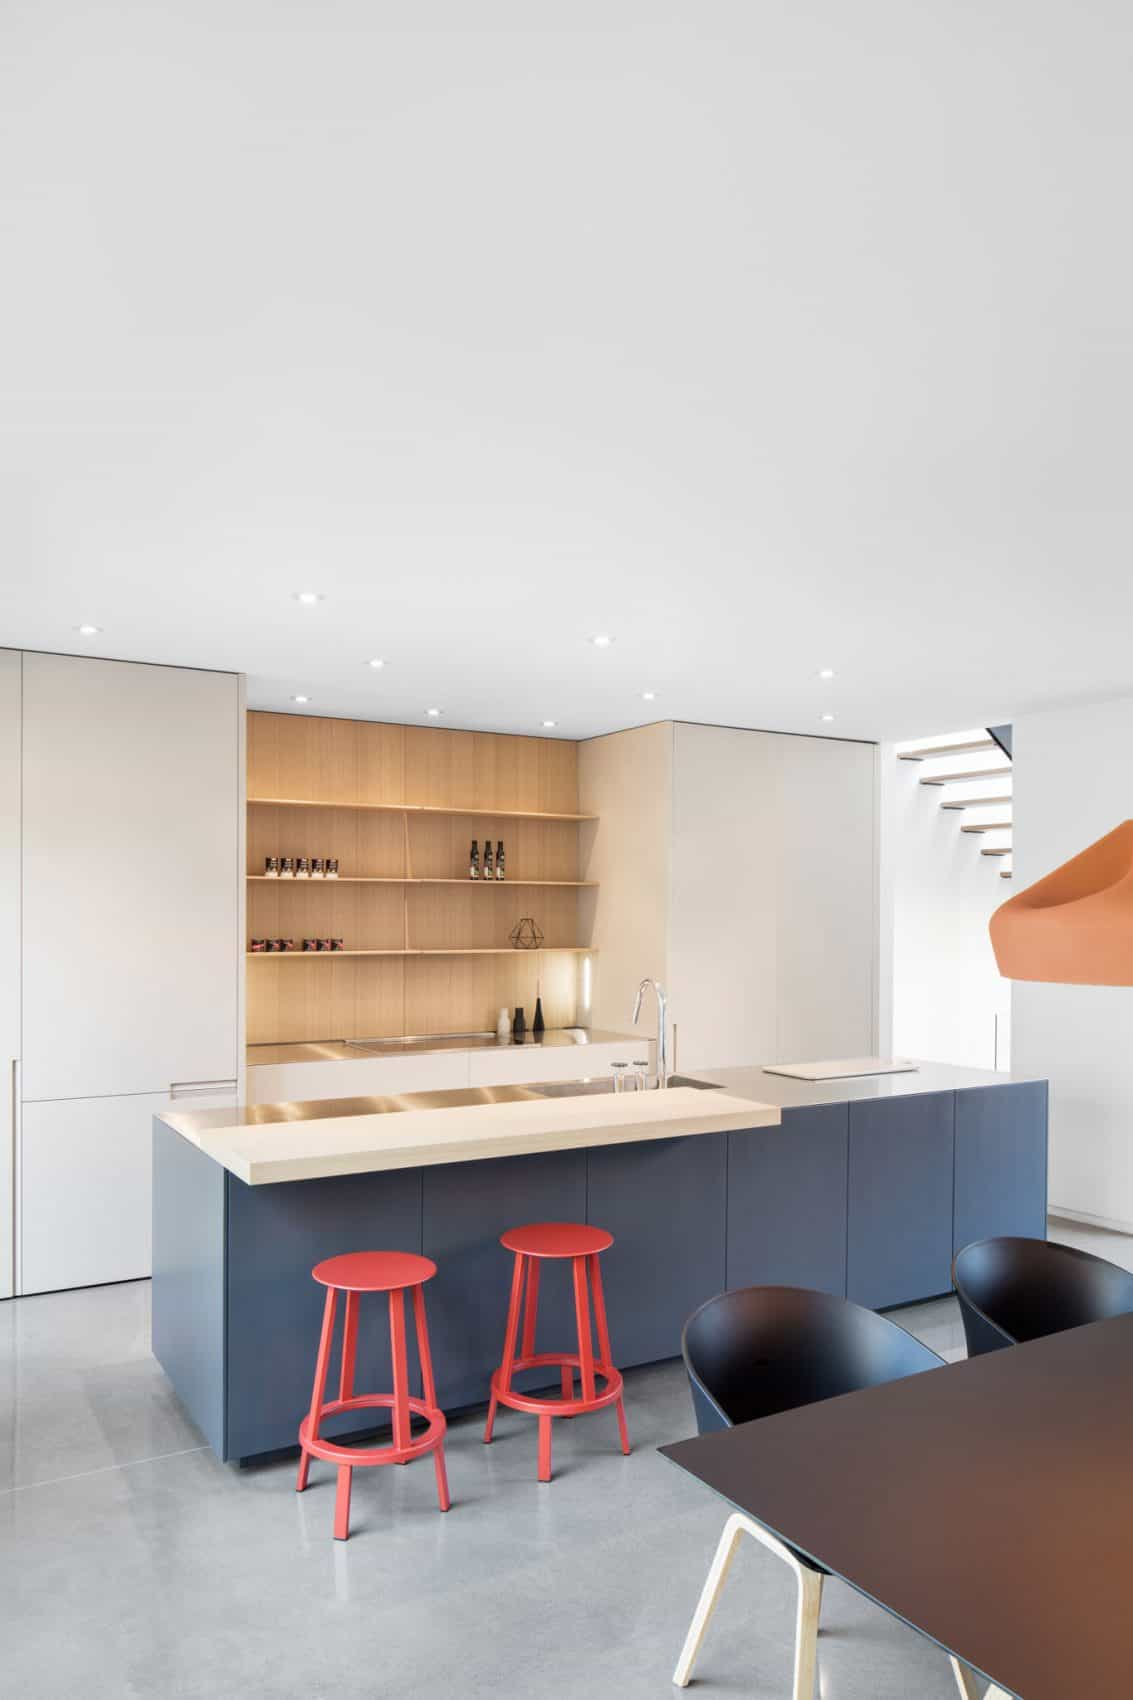 Minimal kitchen and dining